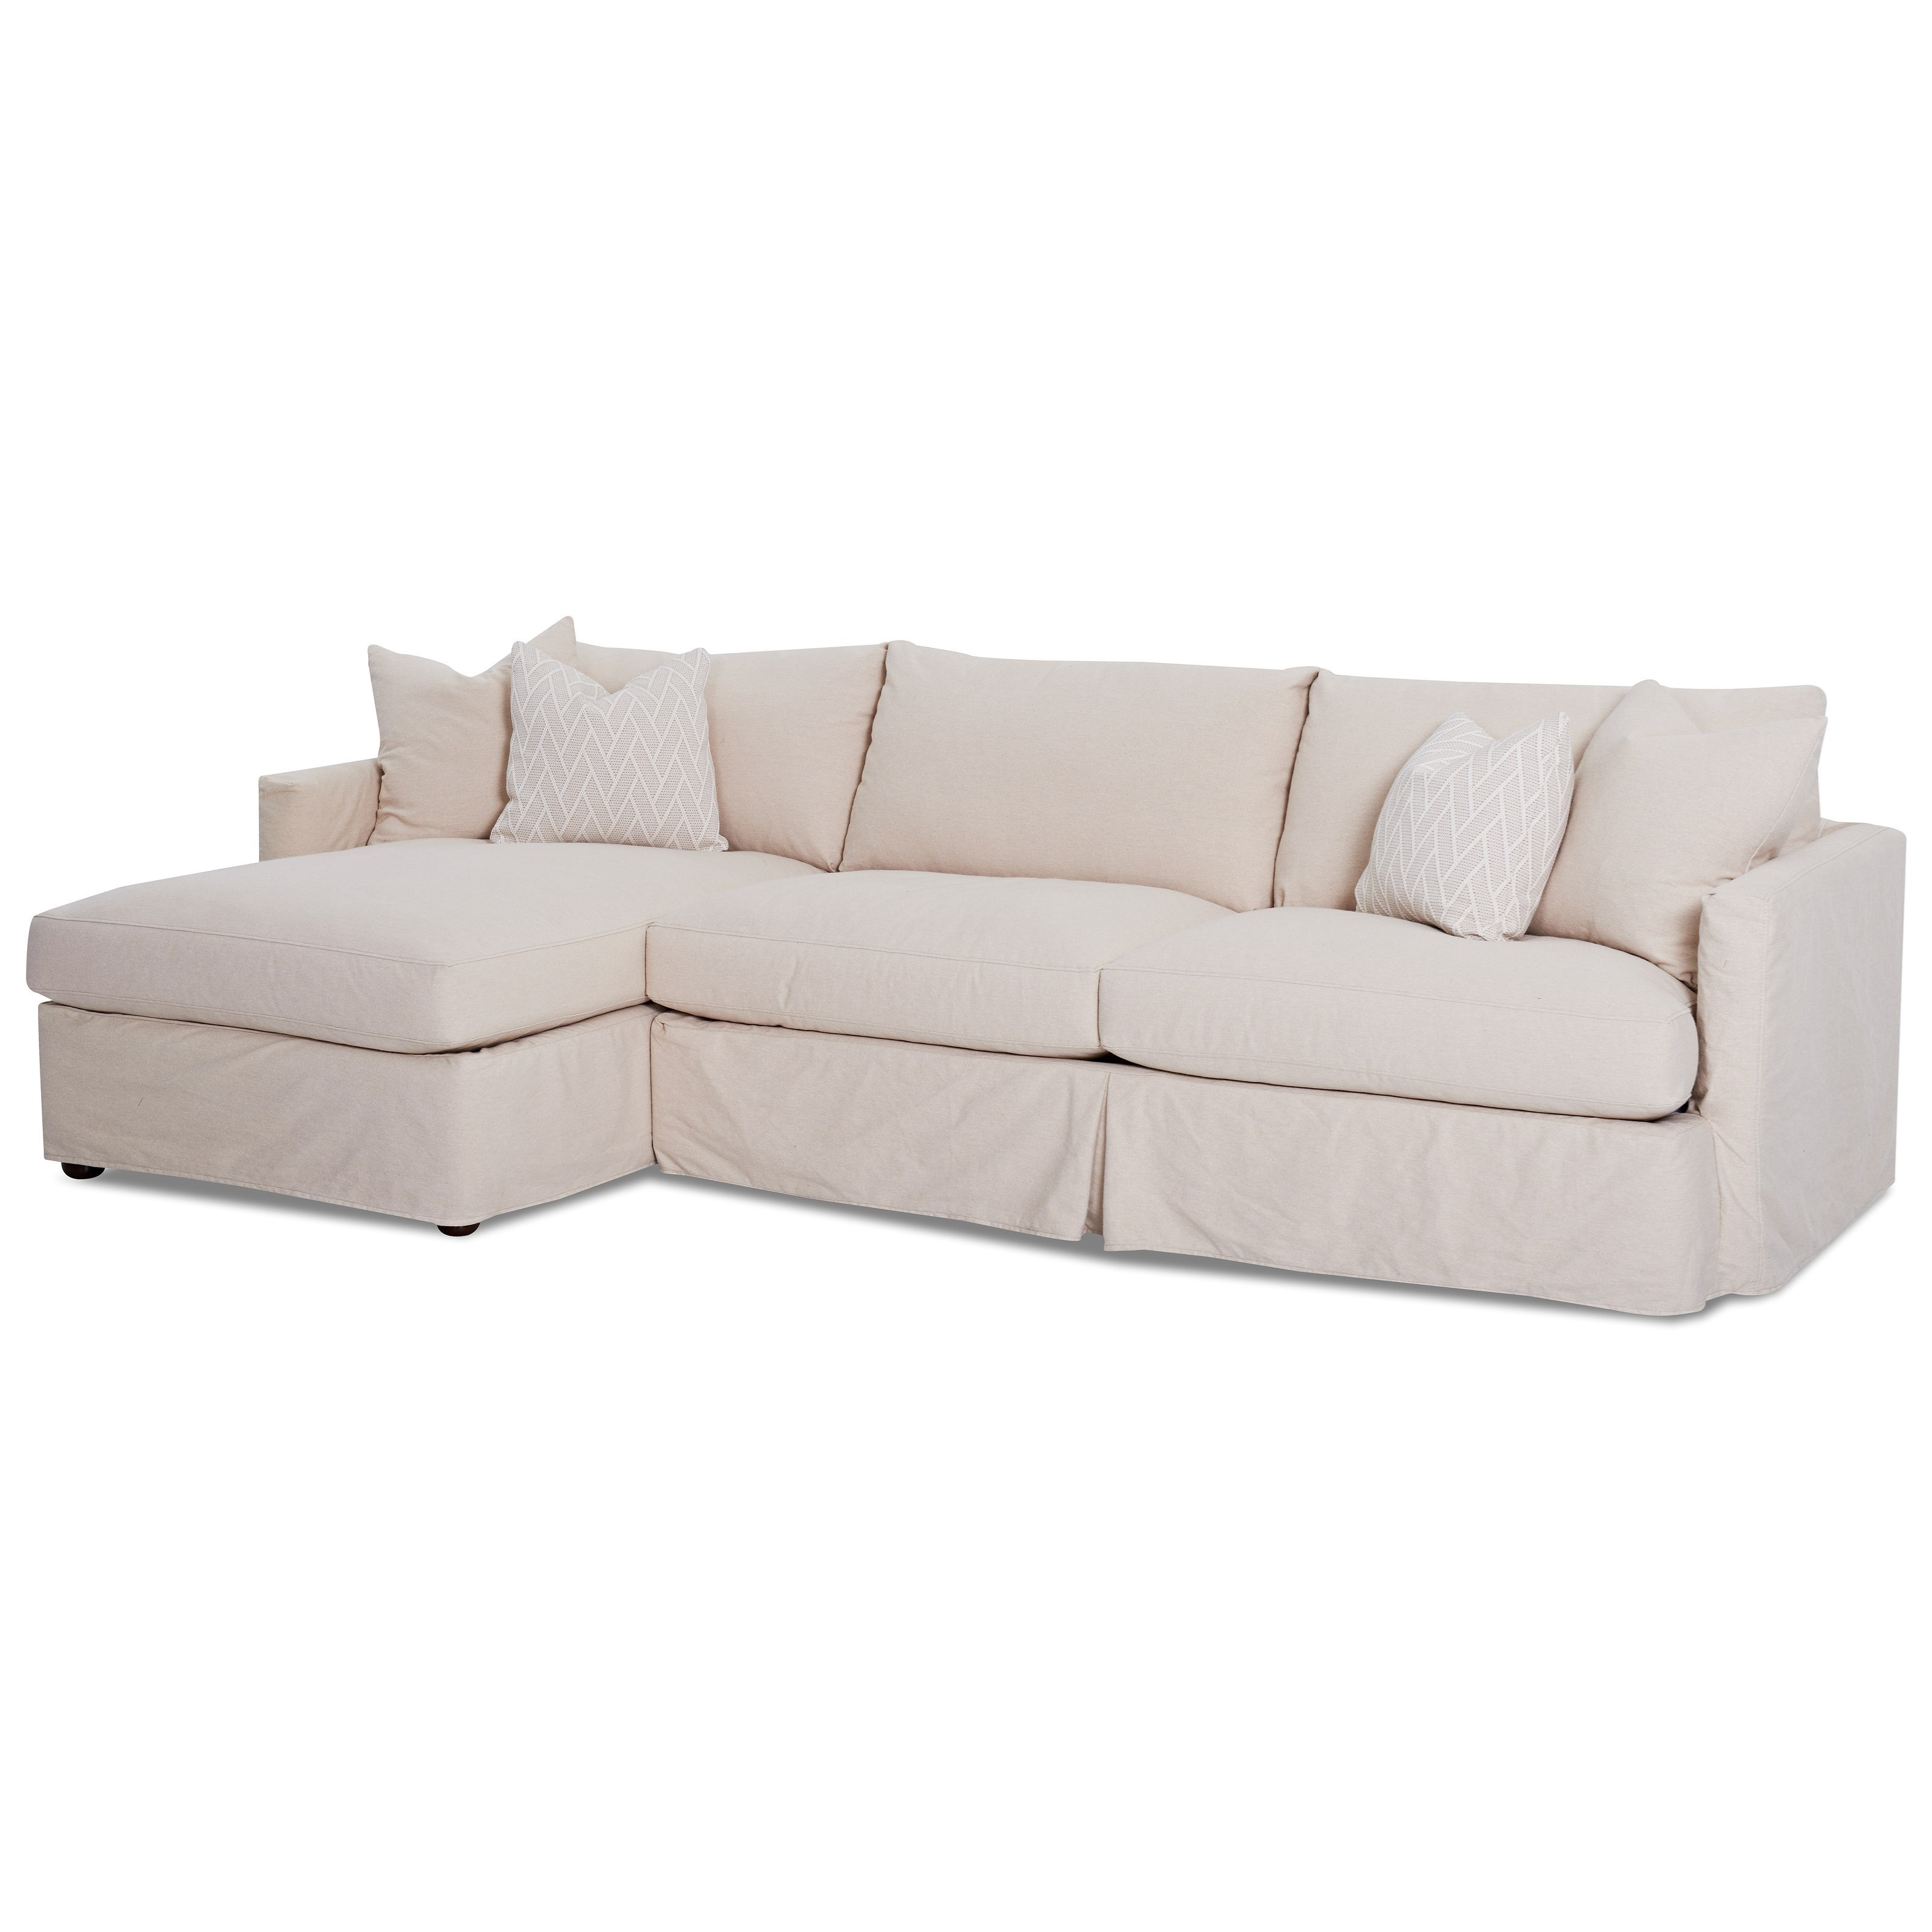 Charmant Klaussner Leisure 2 Pc Sectional Sofa With Slipcover And LAF Chaise